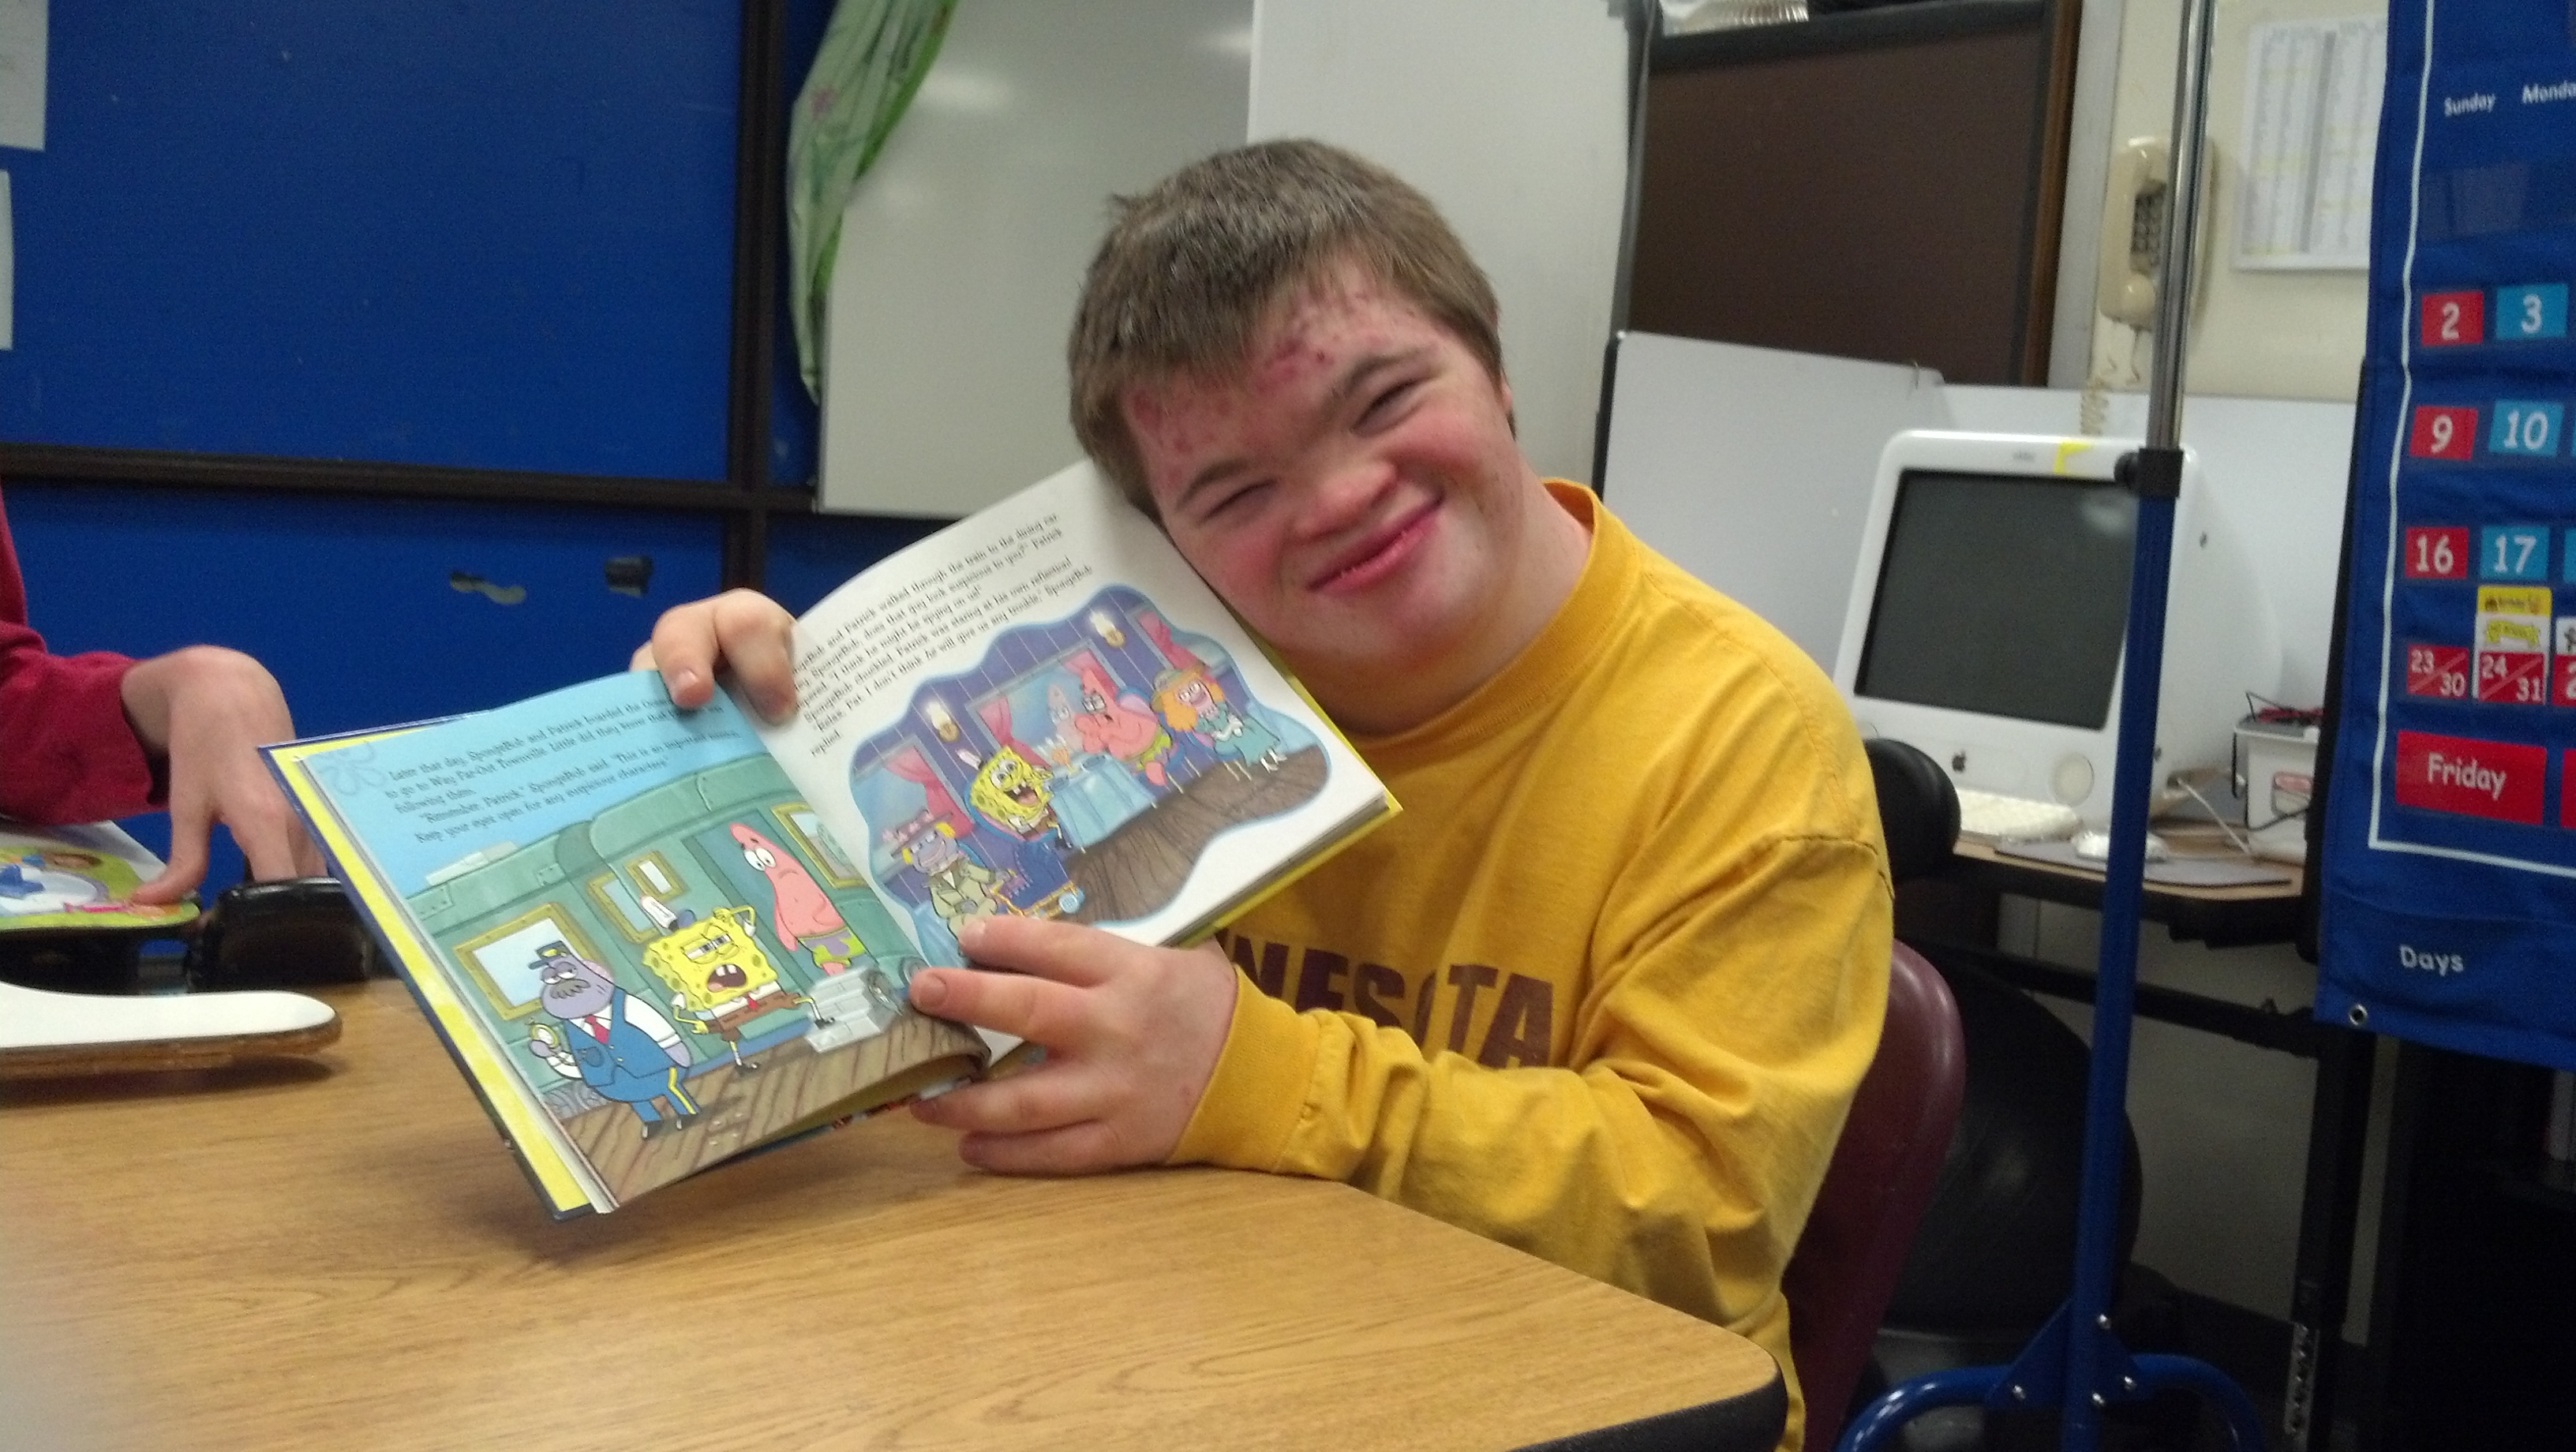 David Junwirth is a student at Bridge View (photo courtesy of Rachel Peulen)